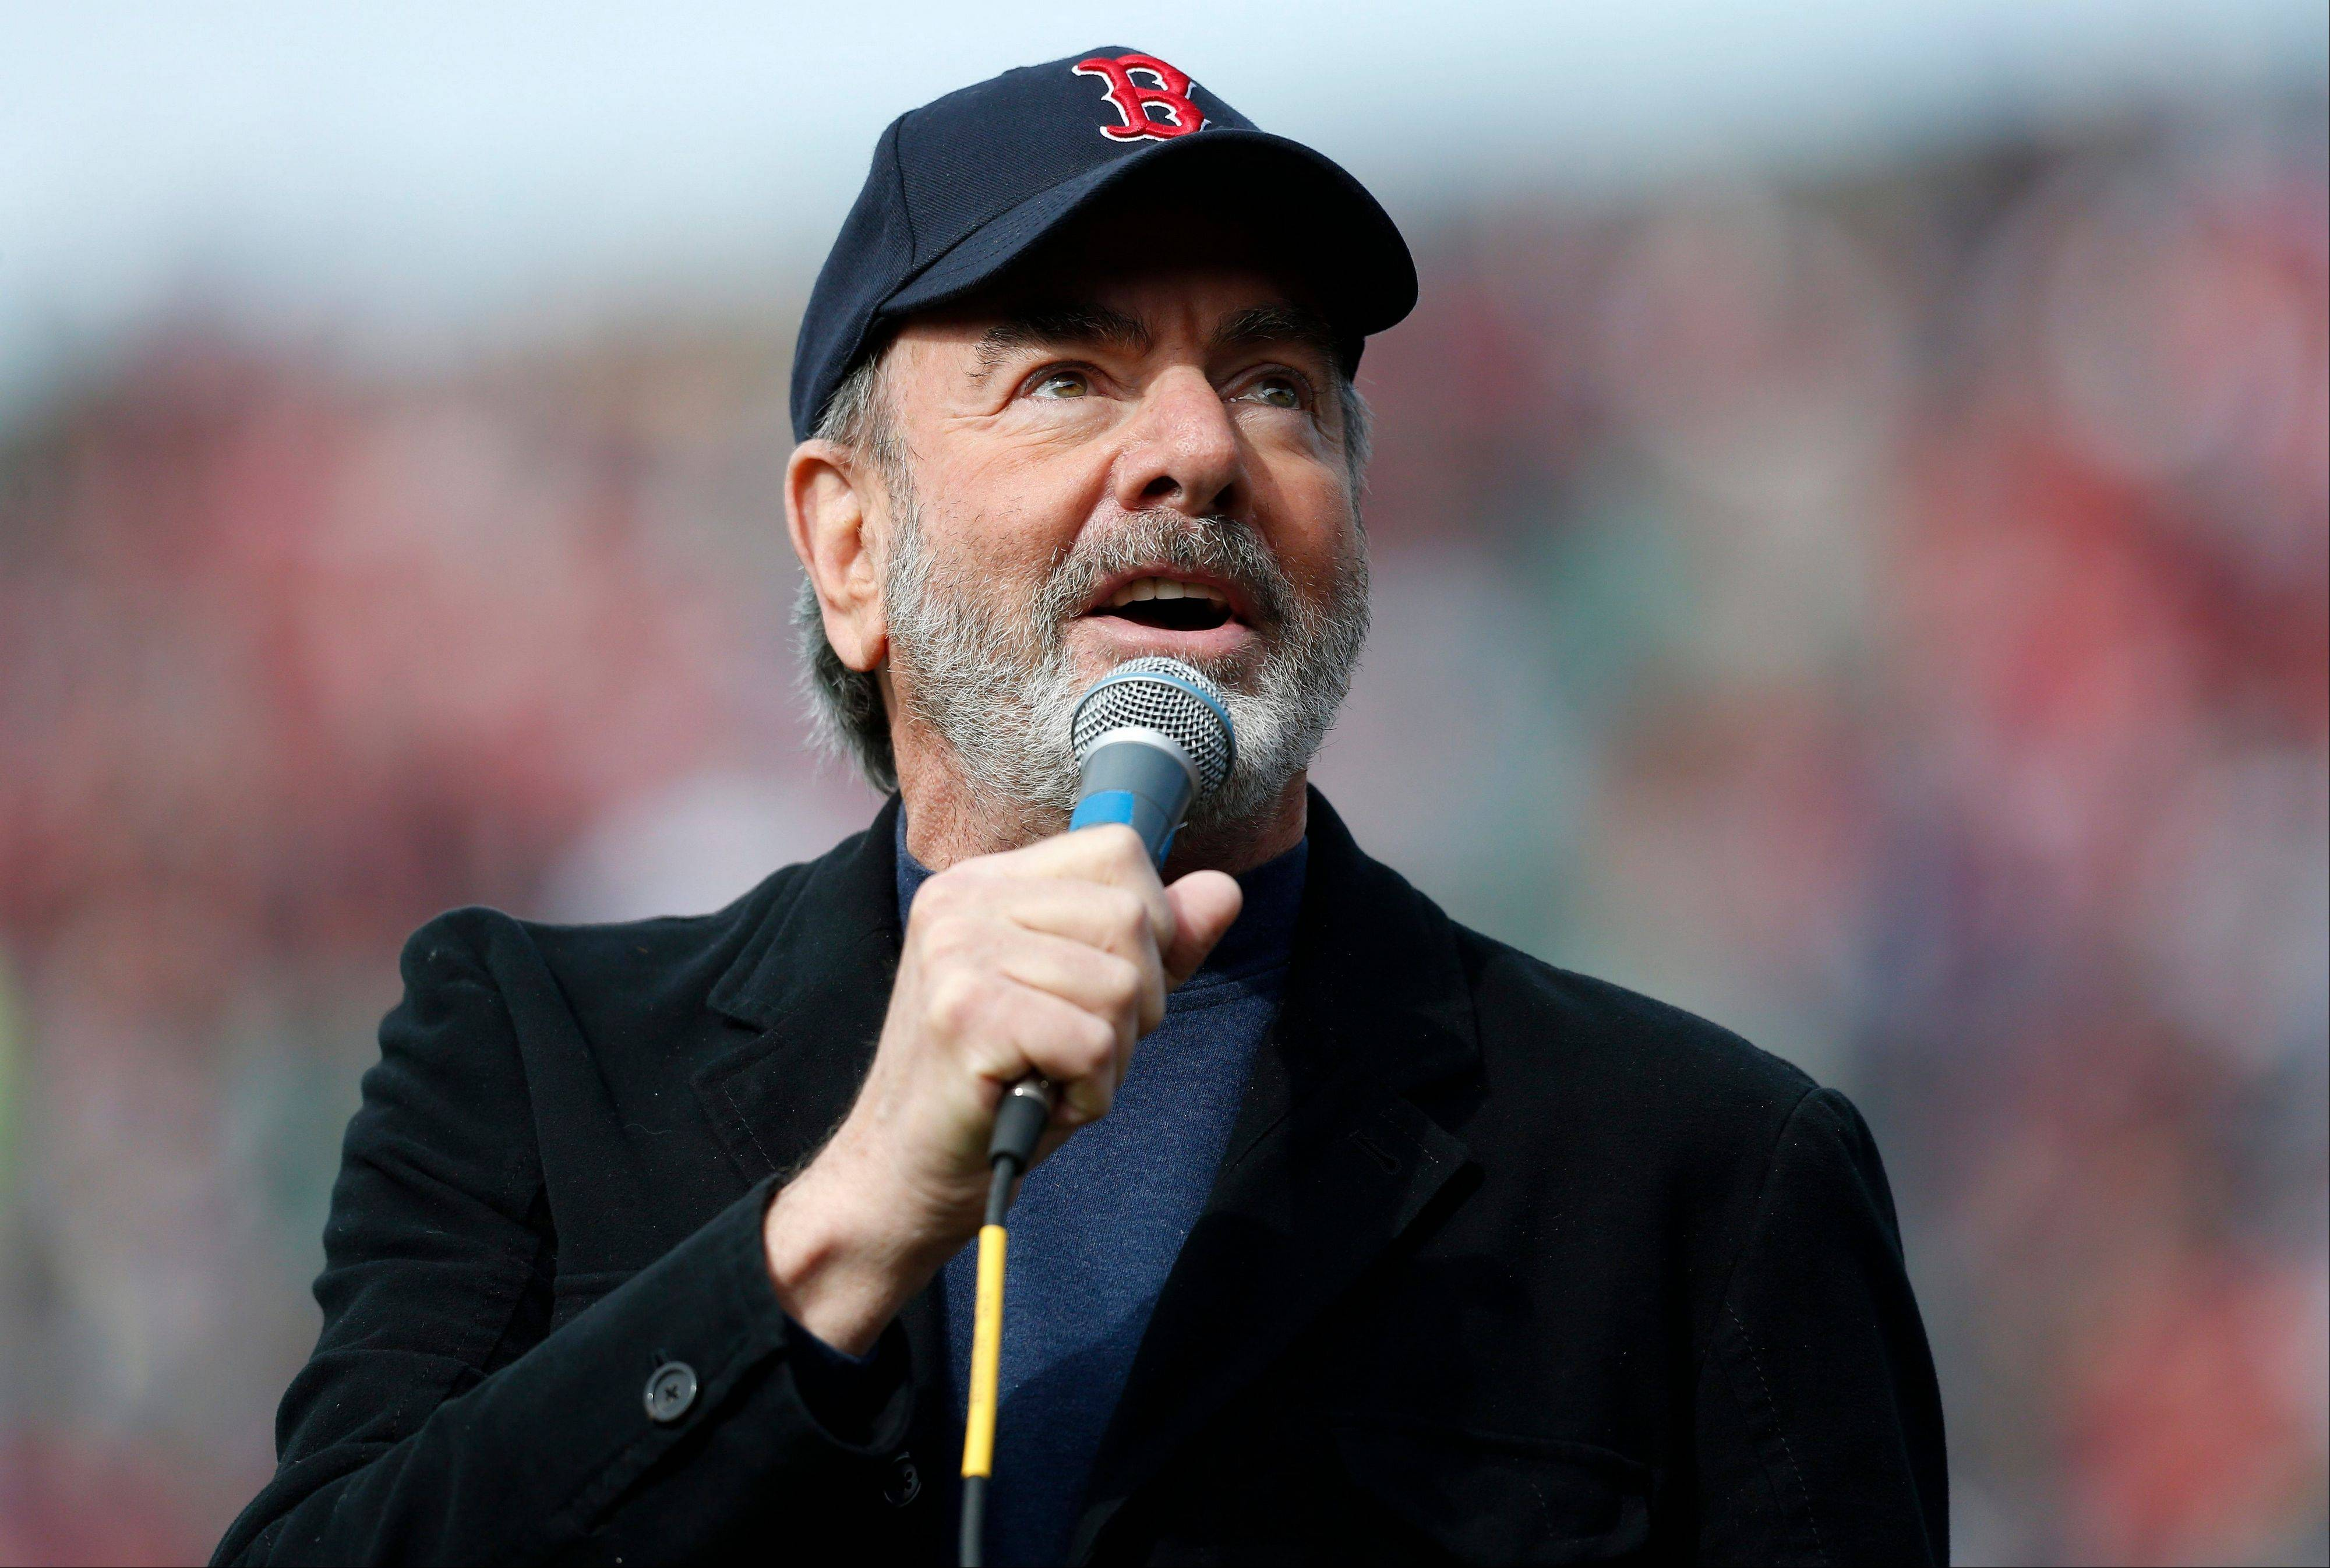 Neil Diamond sings �Sweet Caroline� during the first Boston Red Sox home game after the Boston Marathon explosions. �The Freedom Song (They�ll Never Take Us Down),� is a new patriotically themed song Diamond will release through iTunes and Amazon on July 2. All proceeds from the song will go to benefit the Boston One Fund and The Wounded Warriors Project.